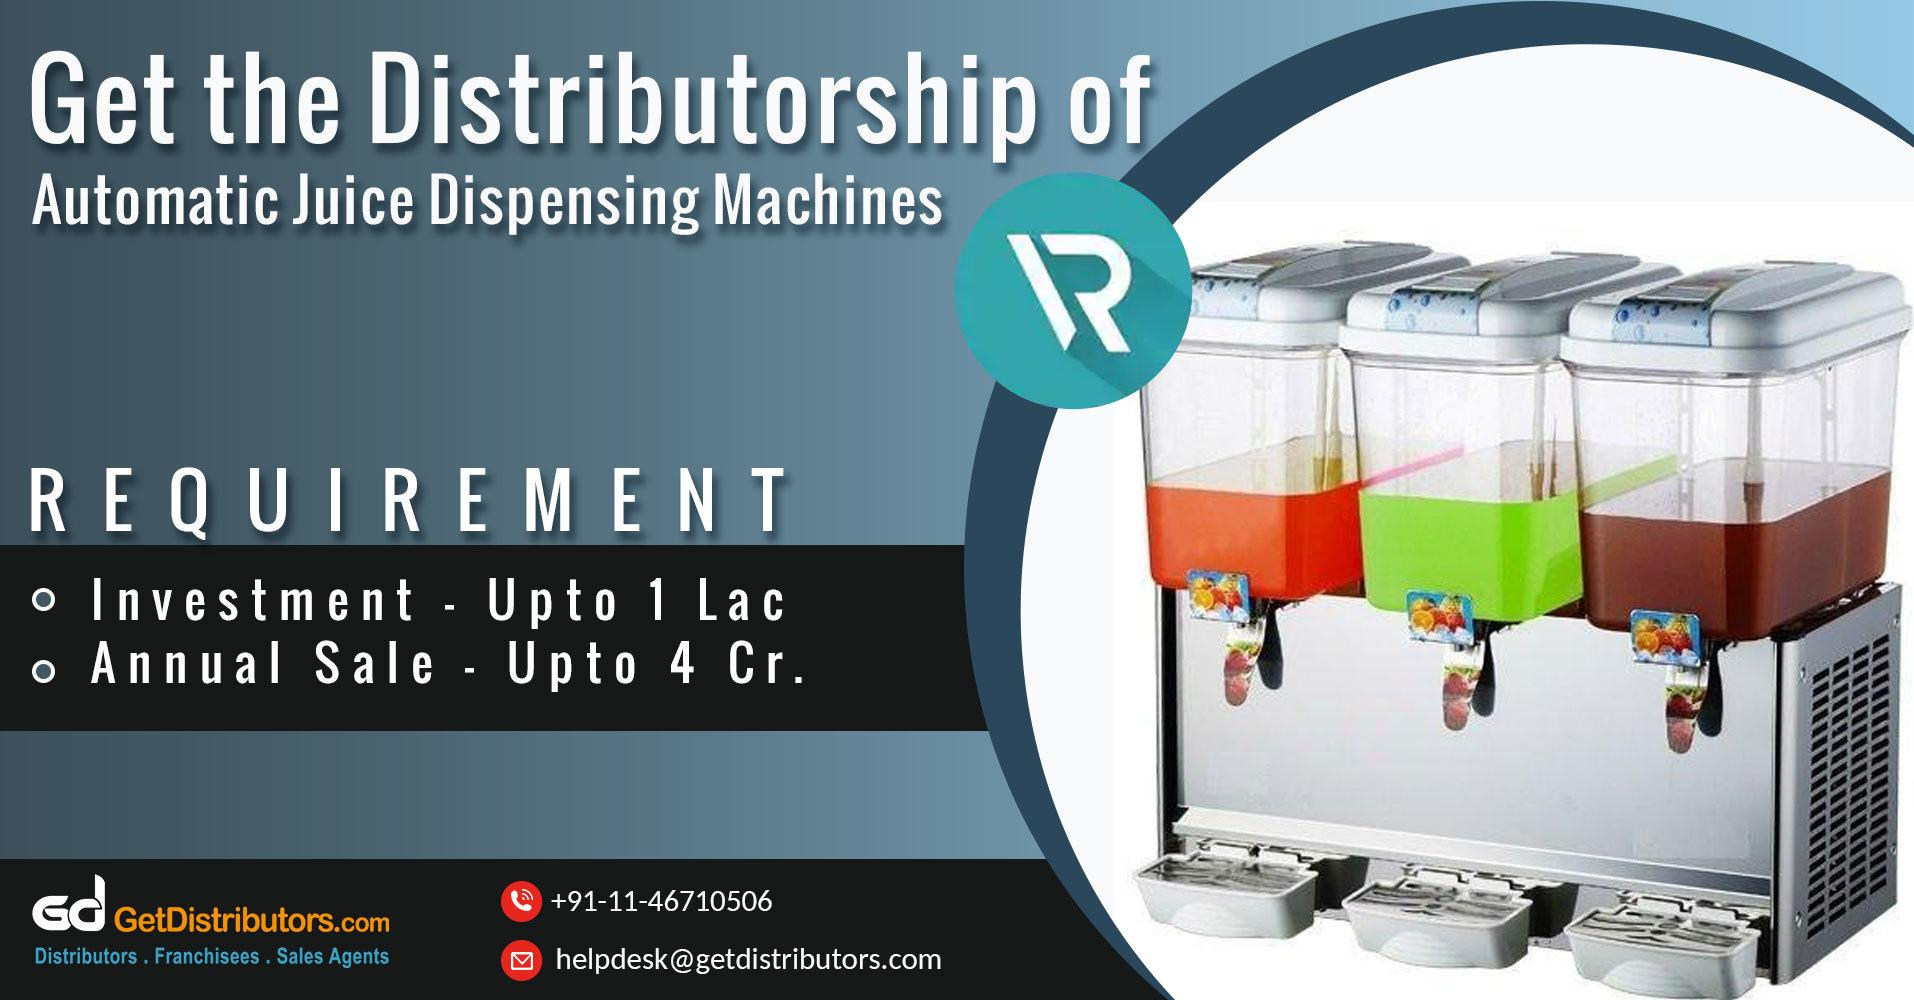 Power Efficient And Durable Automatic Juice Dispensers